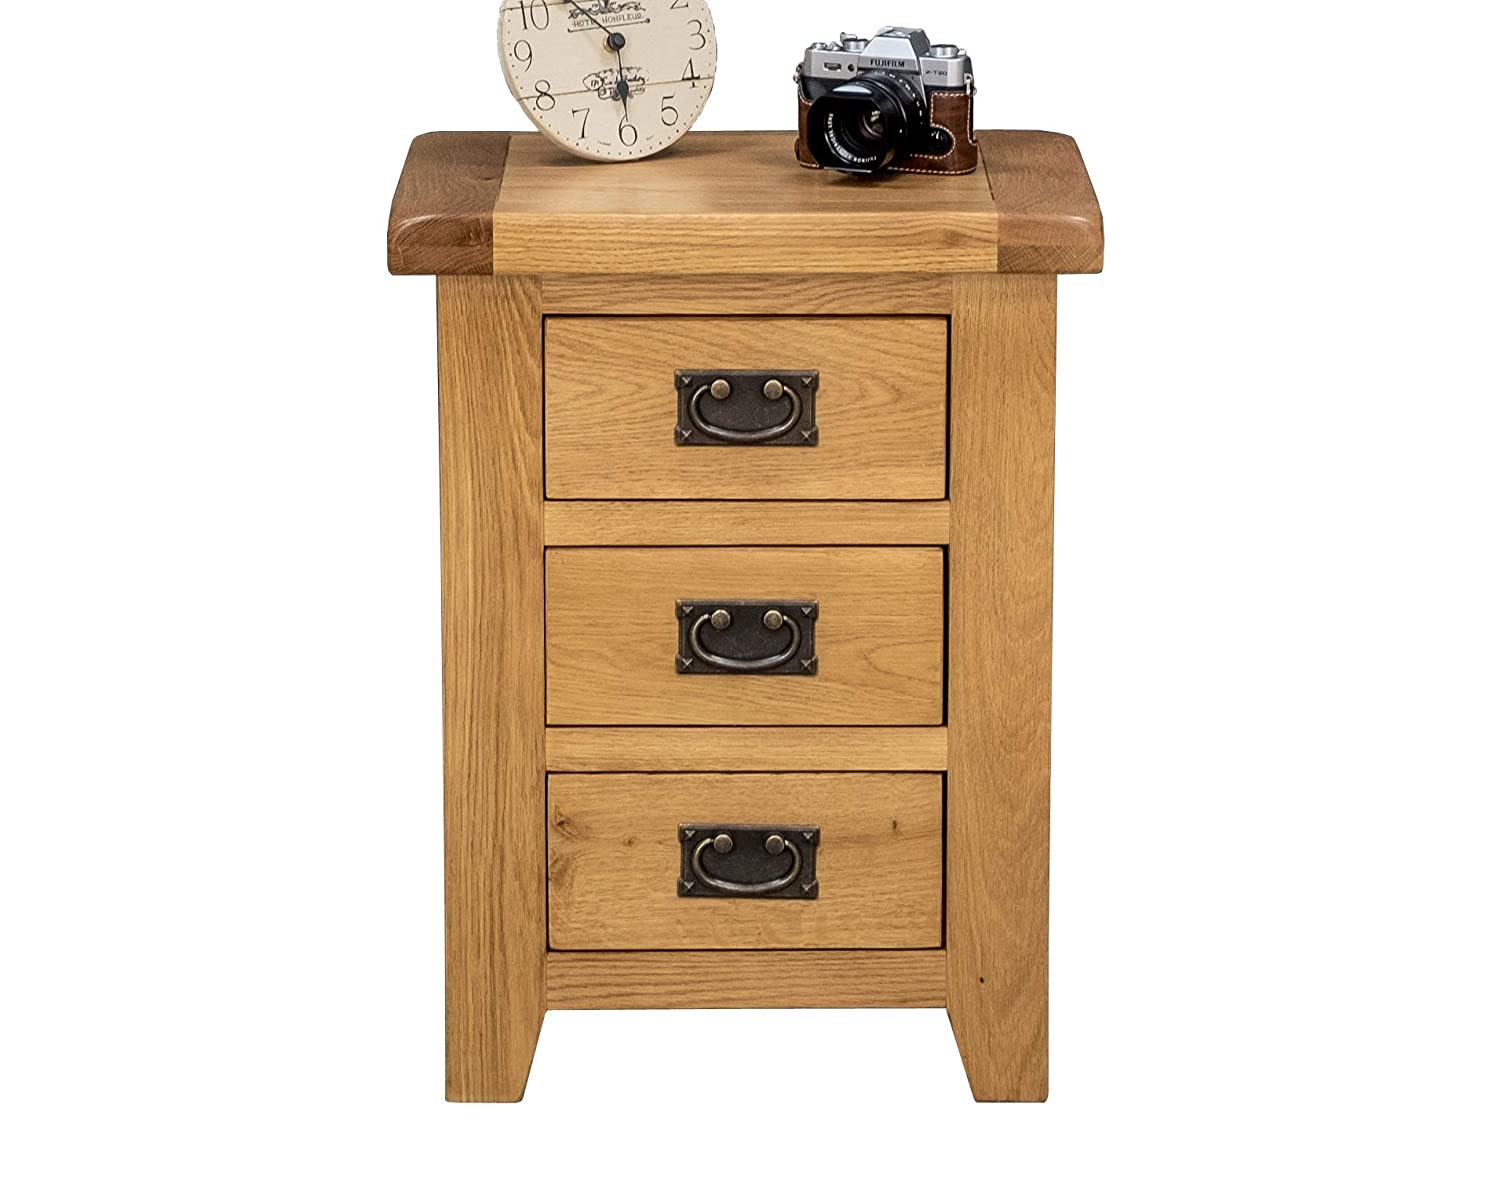 Arklow Oak Bedside Table / 3 Drawer Chest/Bedroom Storage Unit